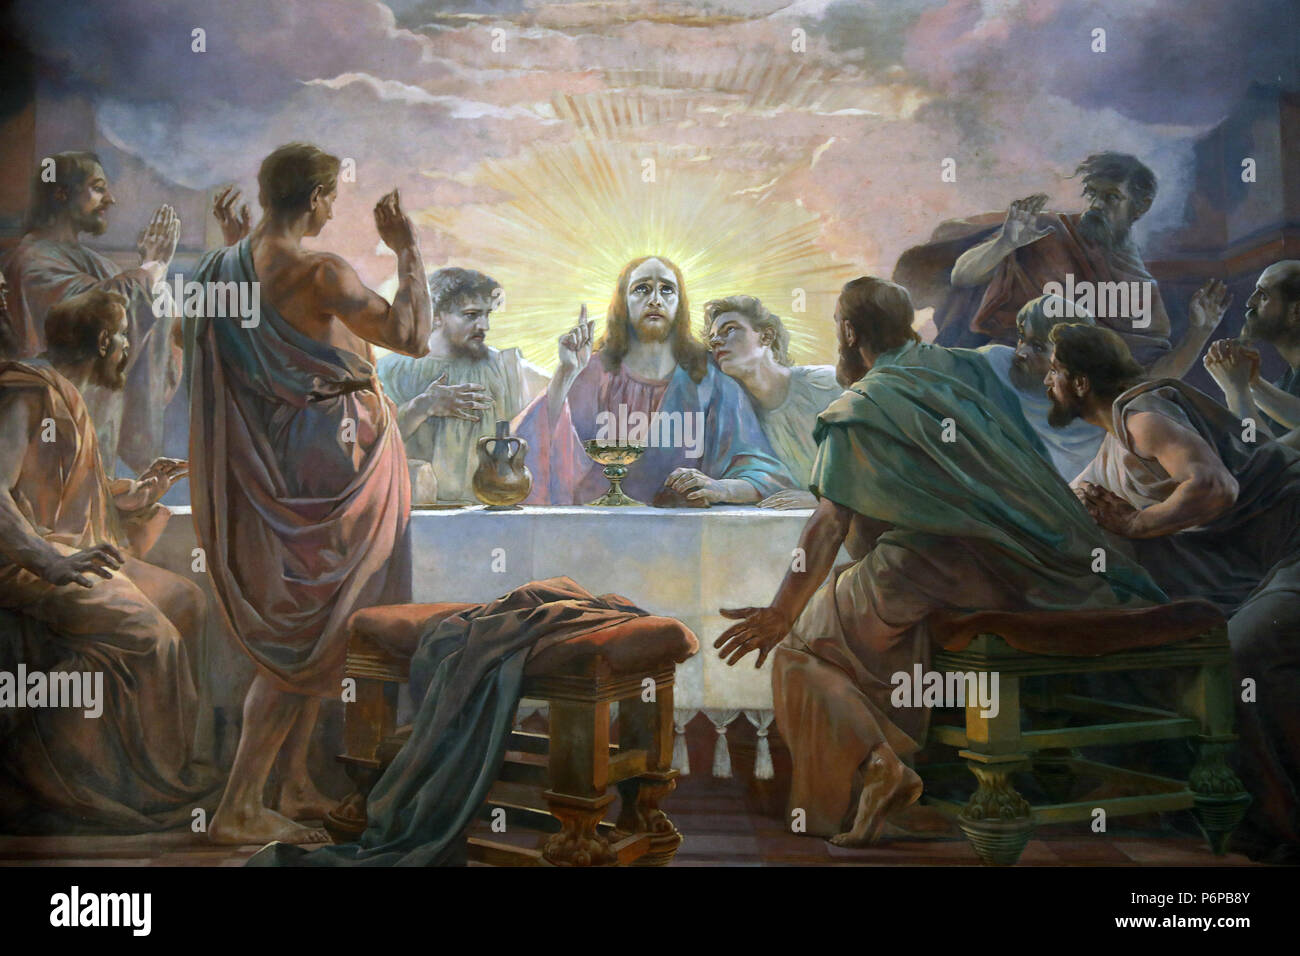 Saint-Pierre de Neuilly catholic church. Neuilly, France. Detail of a fresco depicting the Last Supper and the Resurrection. - Stock Image